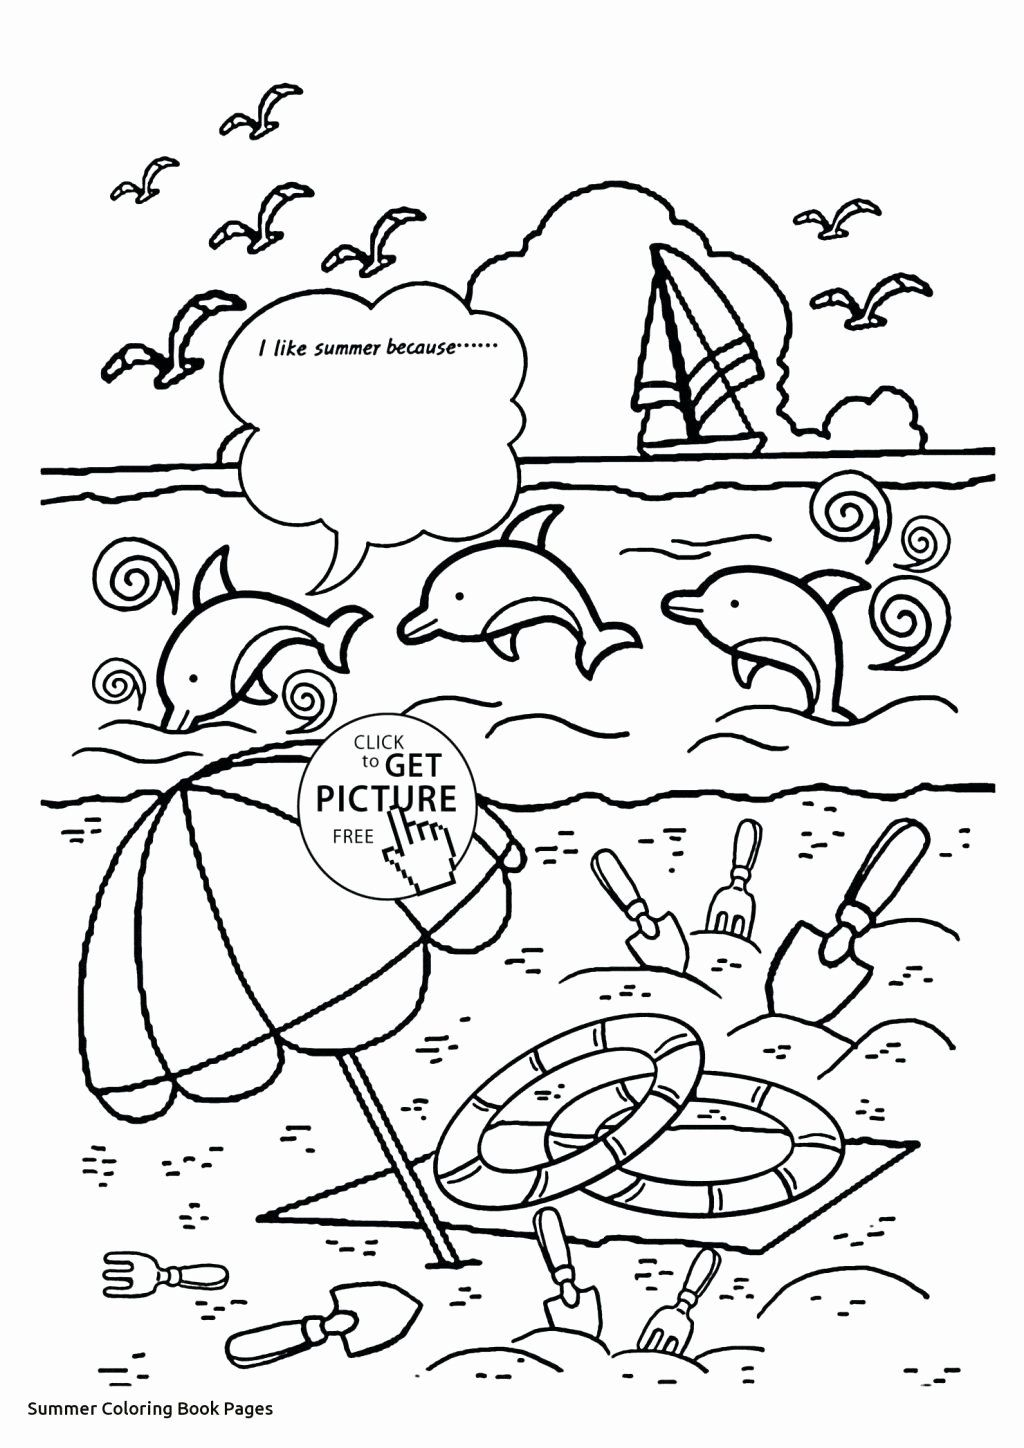 Free Coloring Pages Summer Unique Coloring Pages Summer Coloring Pages For Adults Rainbow Summer Coloring Pages Summer Coloring Sheets Crayola Coloring Pages